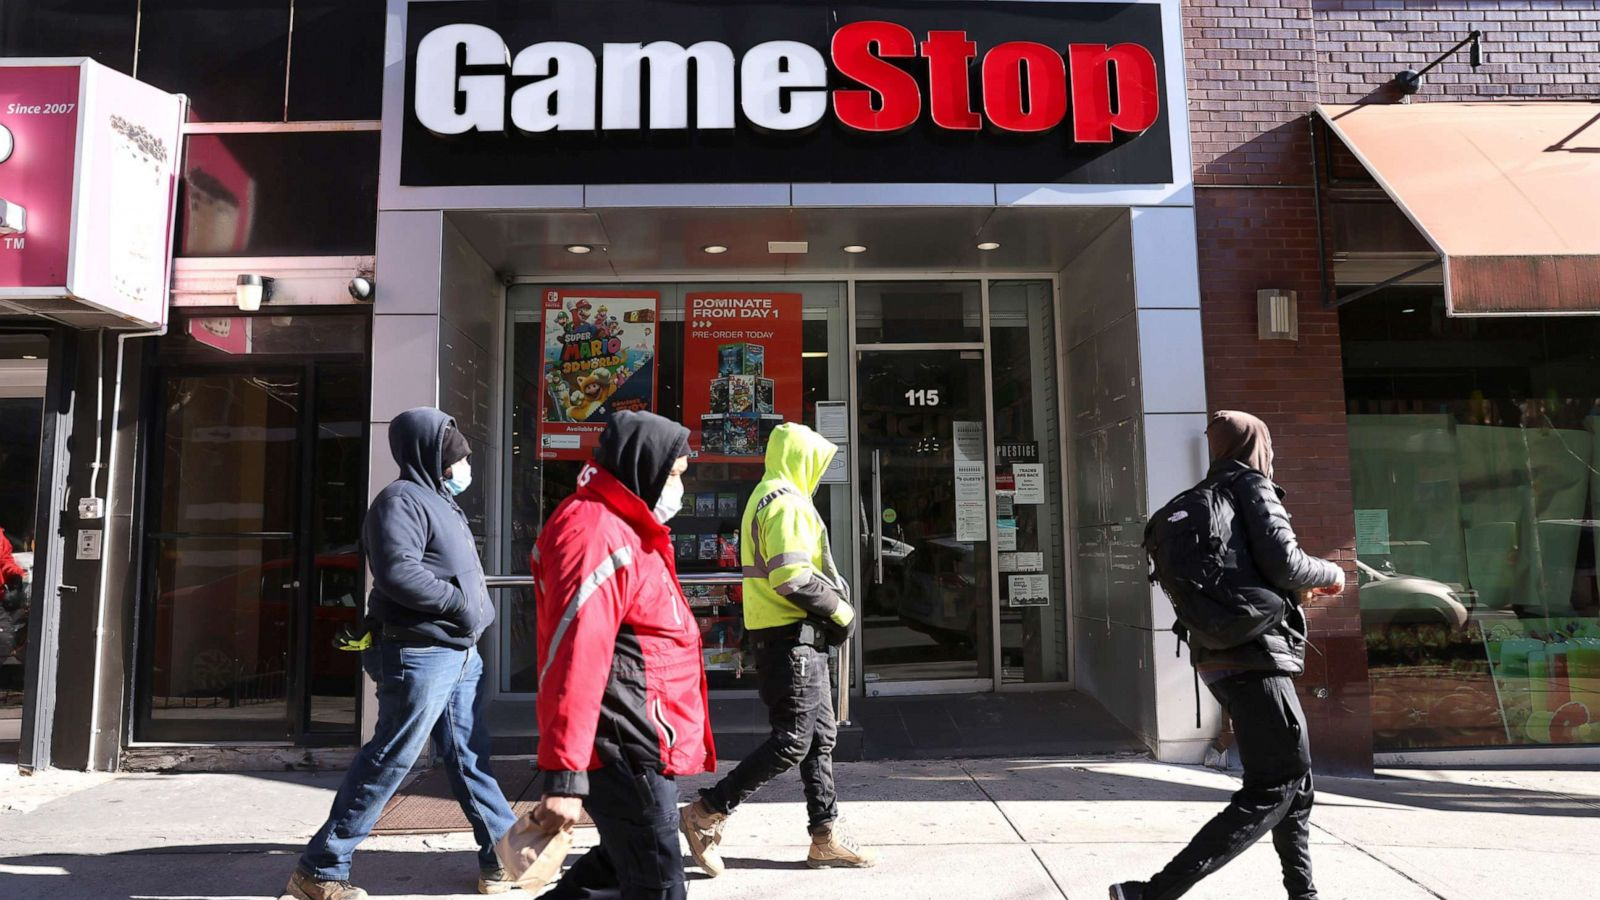 abcnews.go.com - Catherine Thorbecke - GameStop's chief financial officer steps down after stock market saga